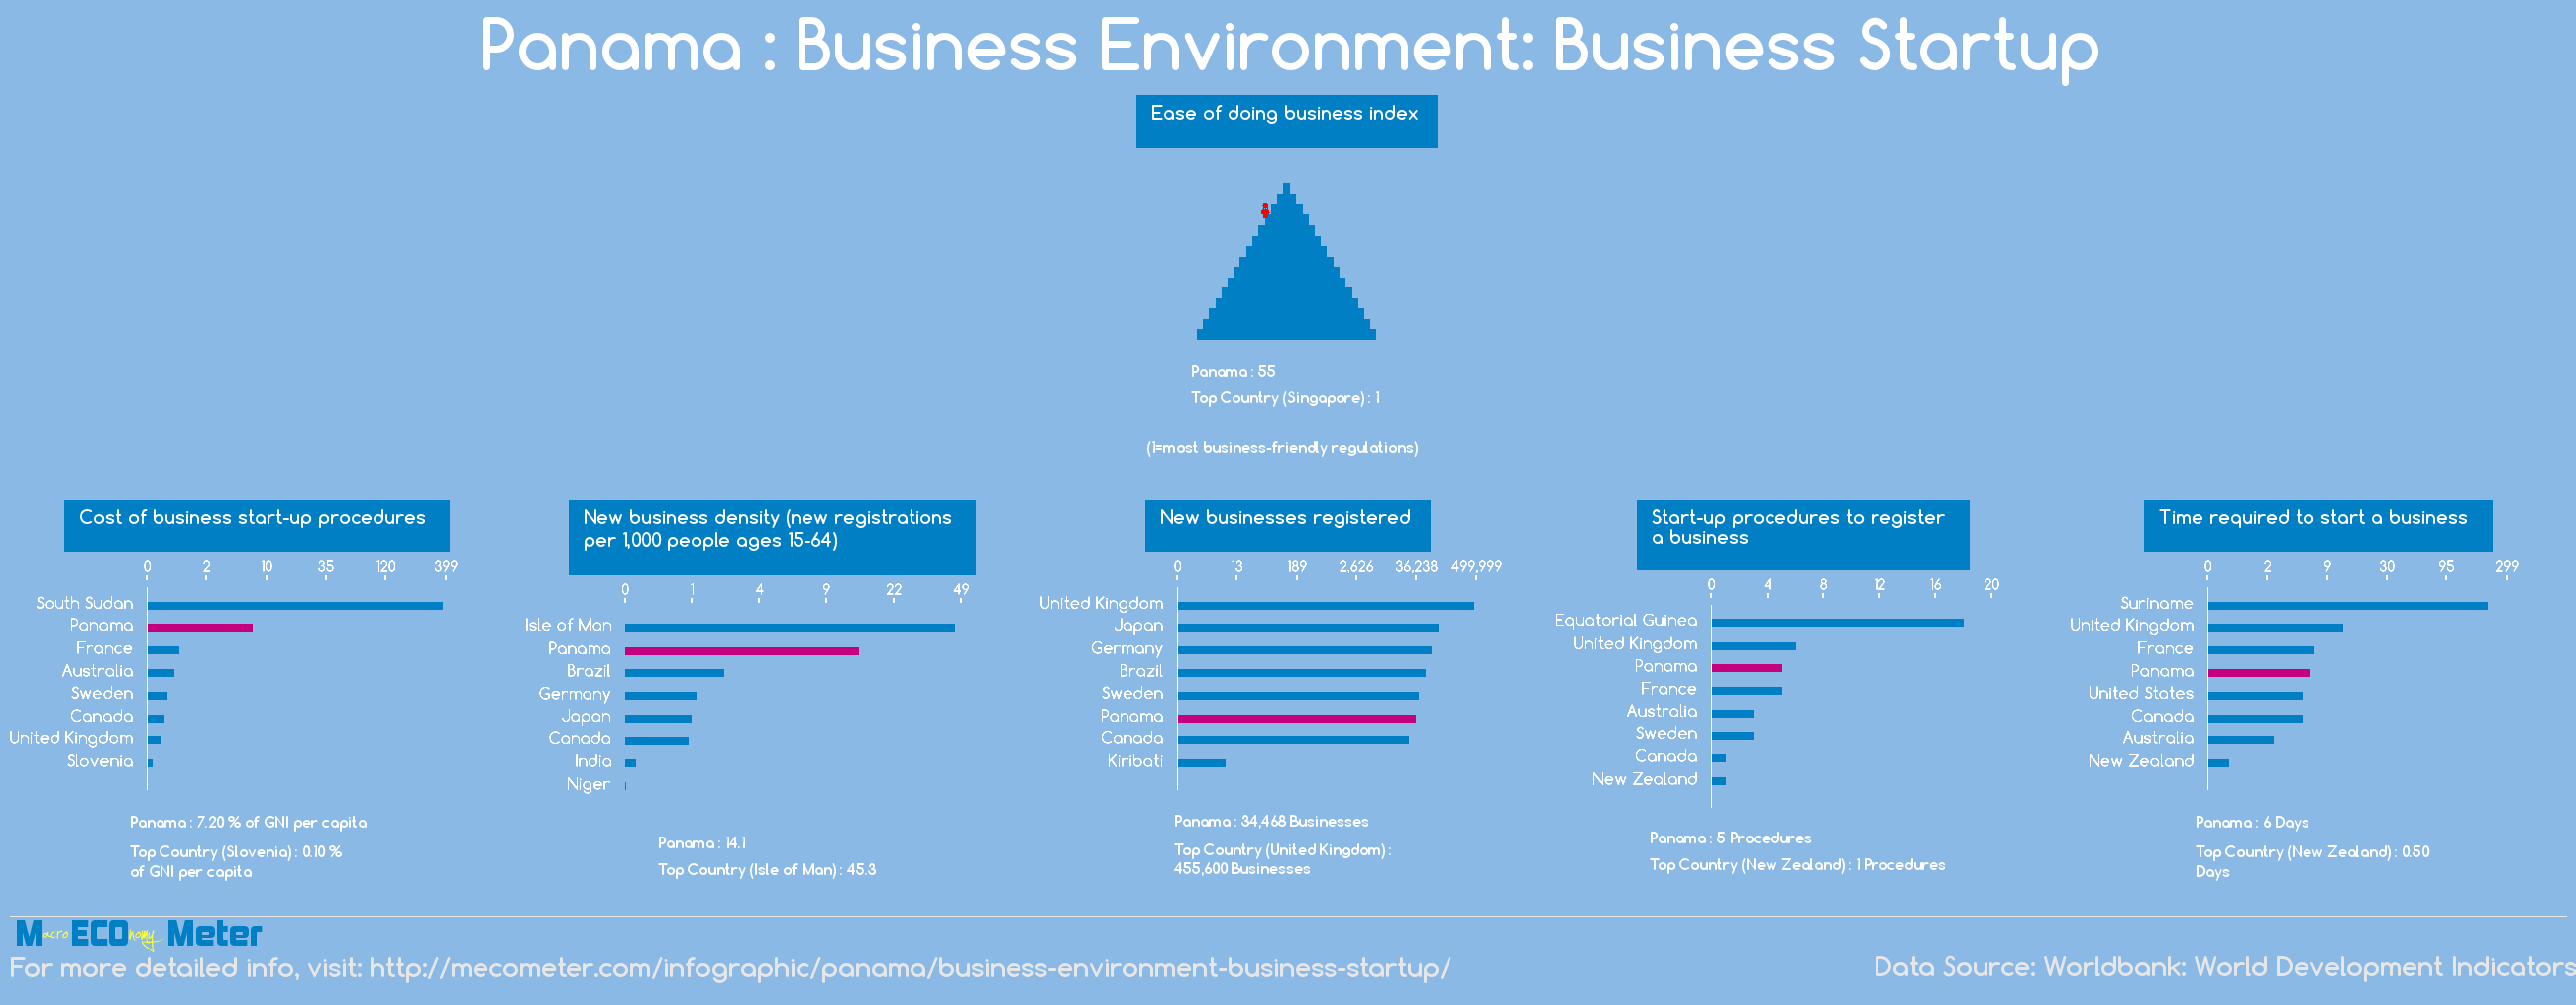 Panama : Business Environment: Business Startup